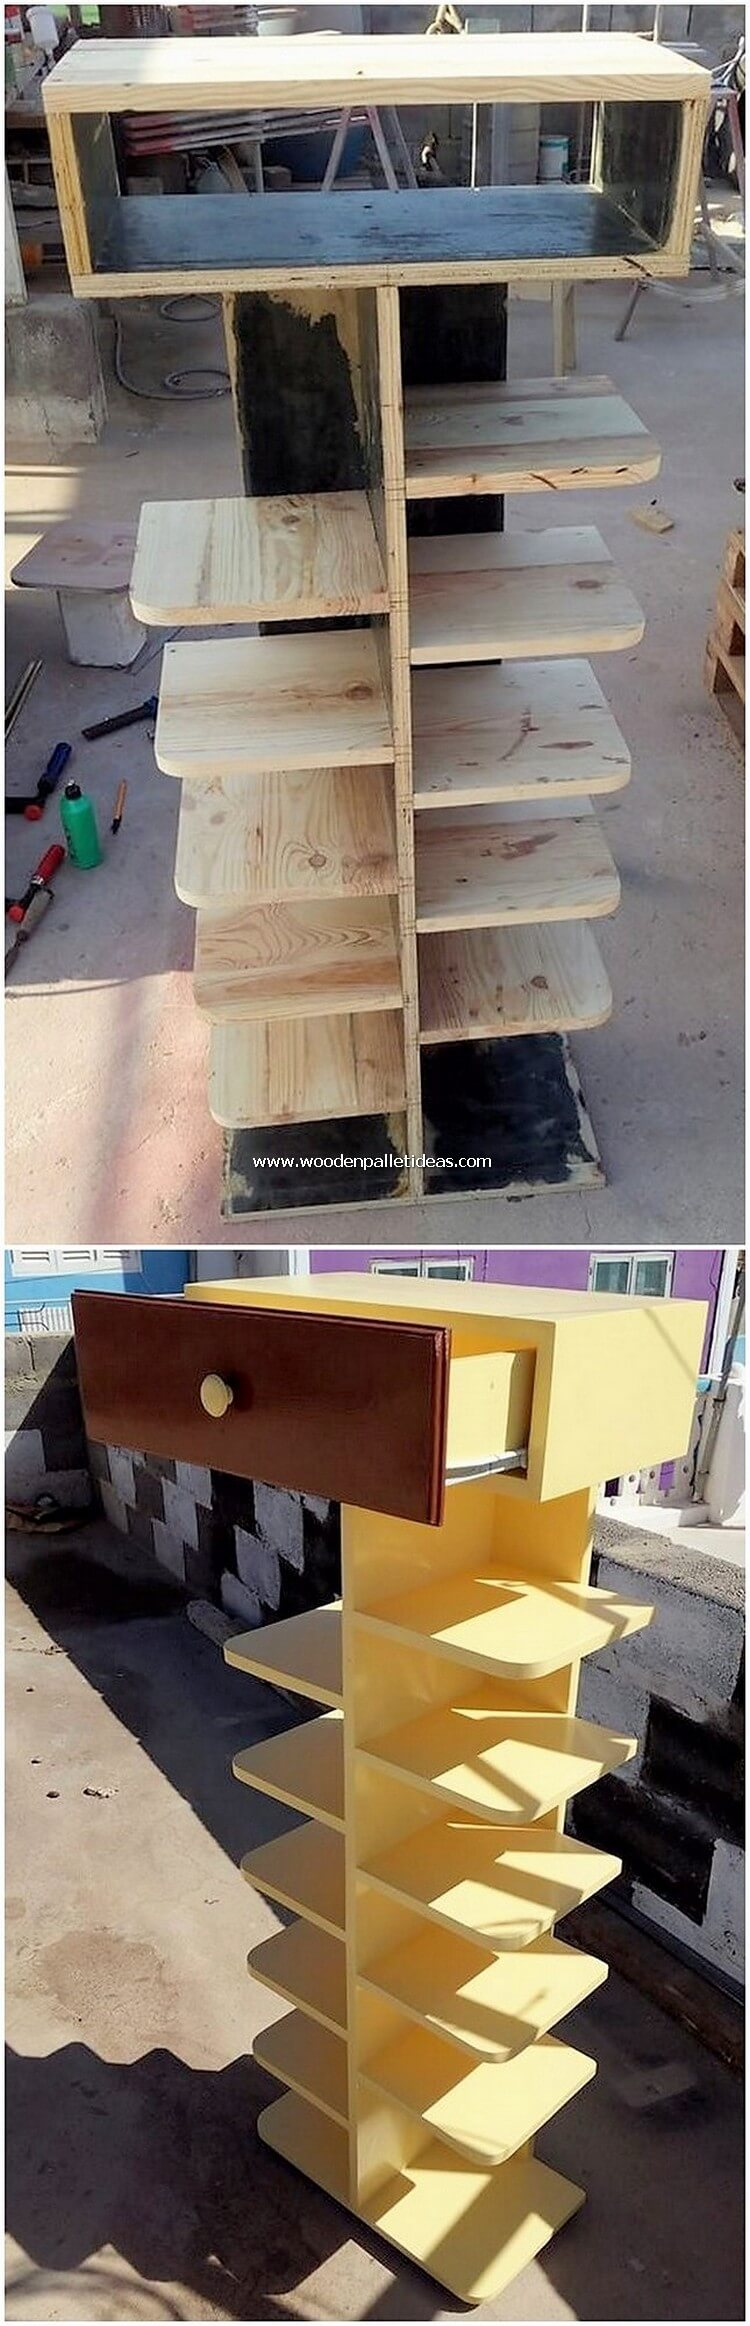 Pallet Shelving Unit with Drawer